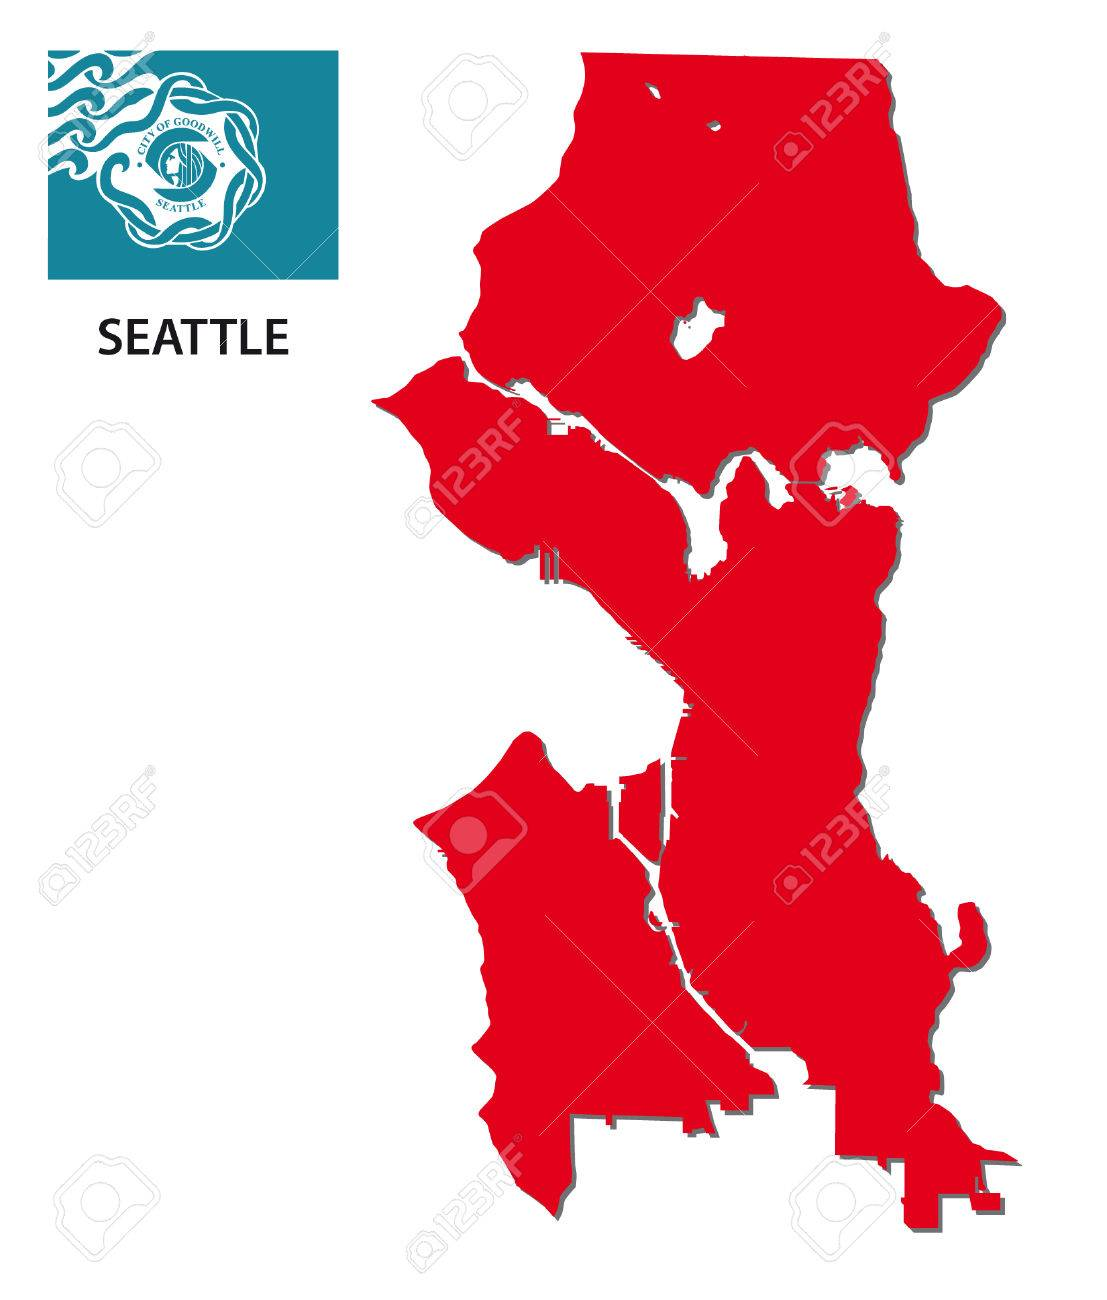 Seattle Map With Flag Royalty Free Cliparts Vectors And Stock